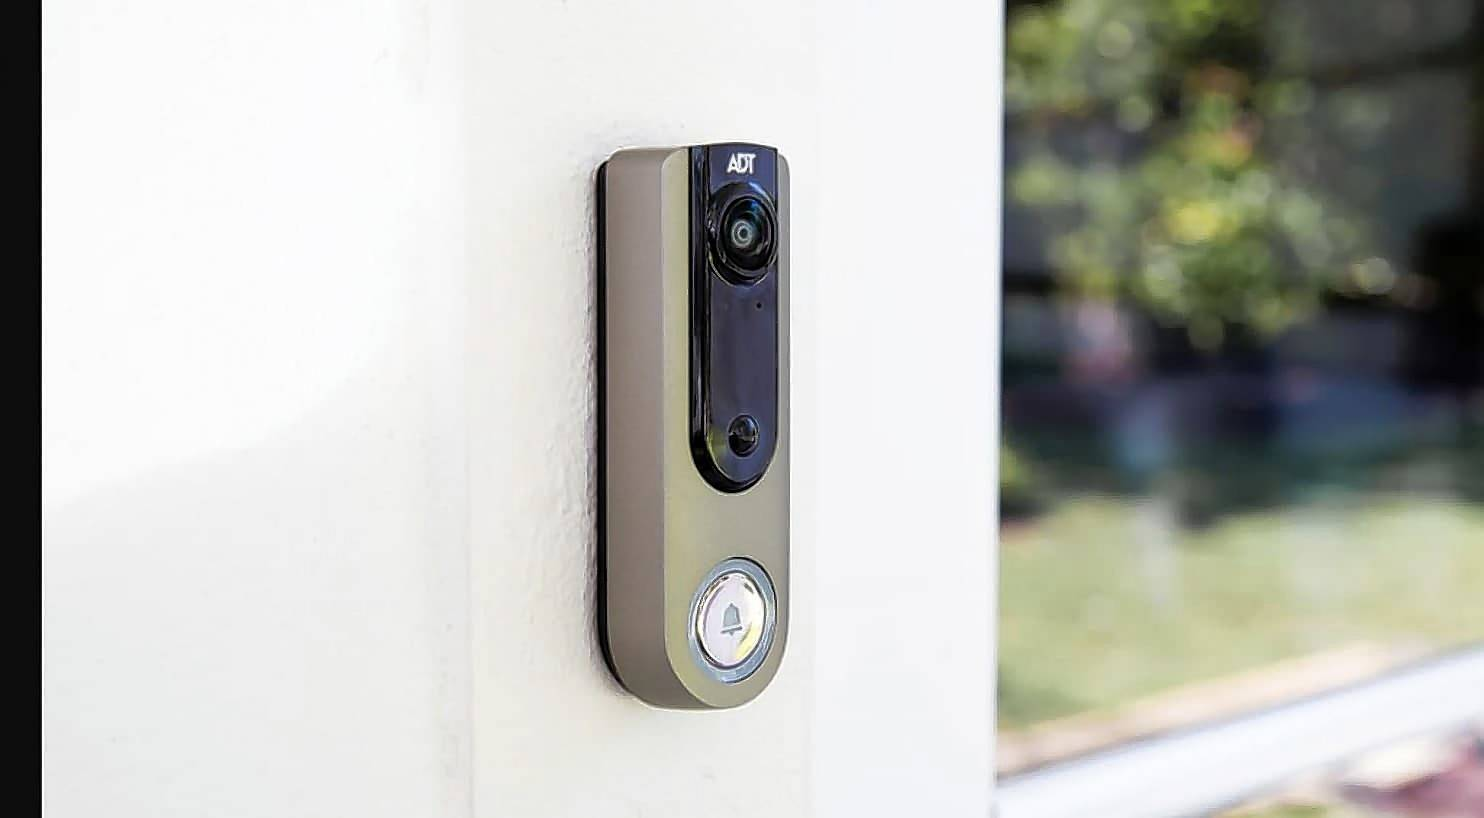 The ADT Video Doorbell can be controlled by an app.